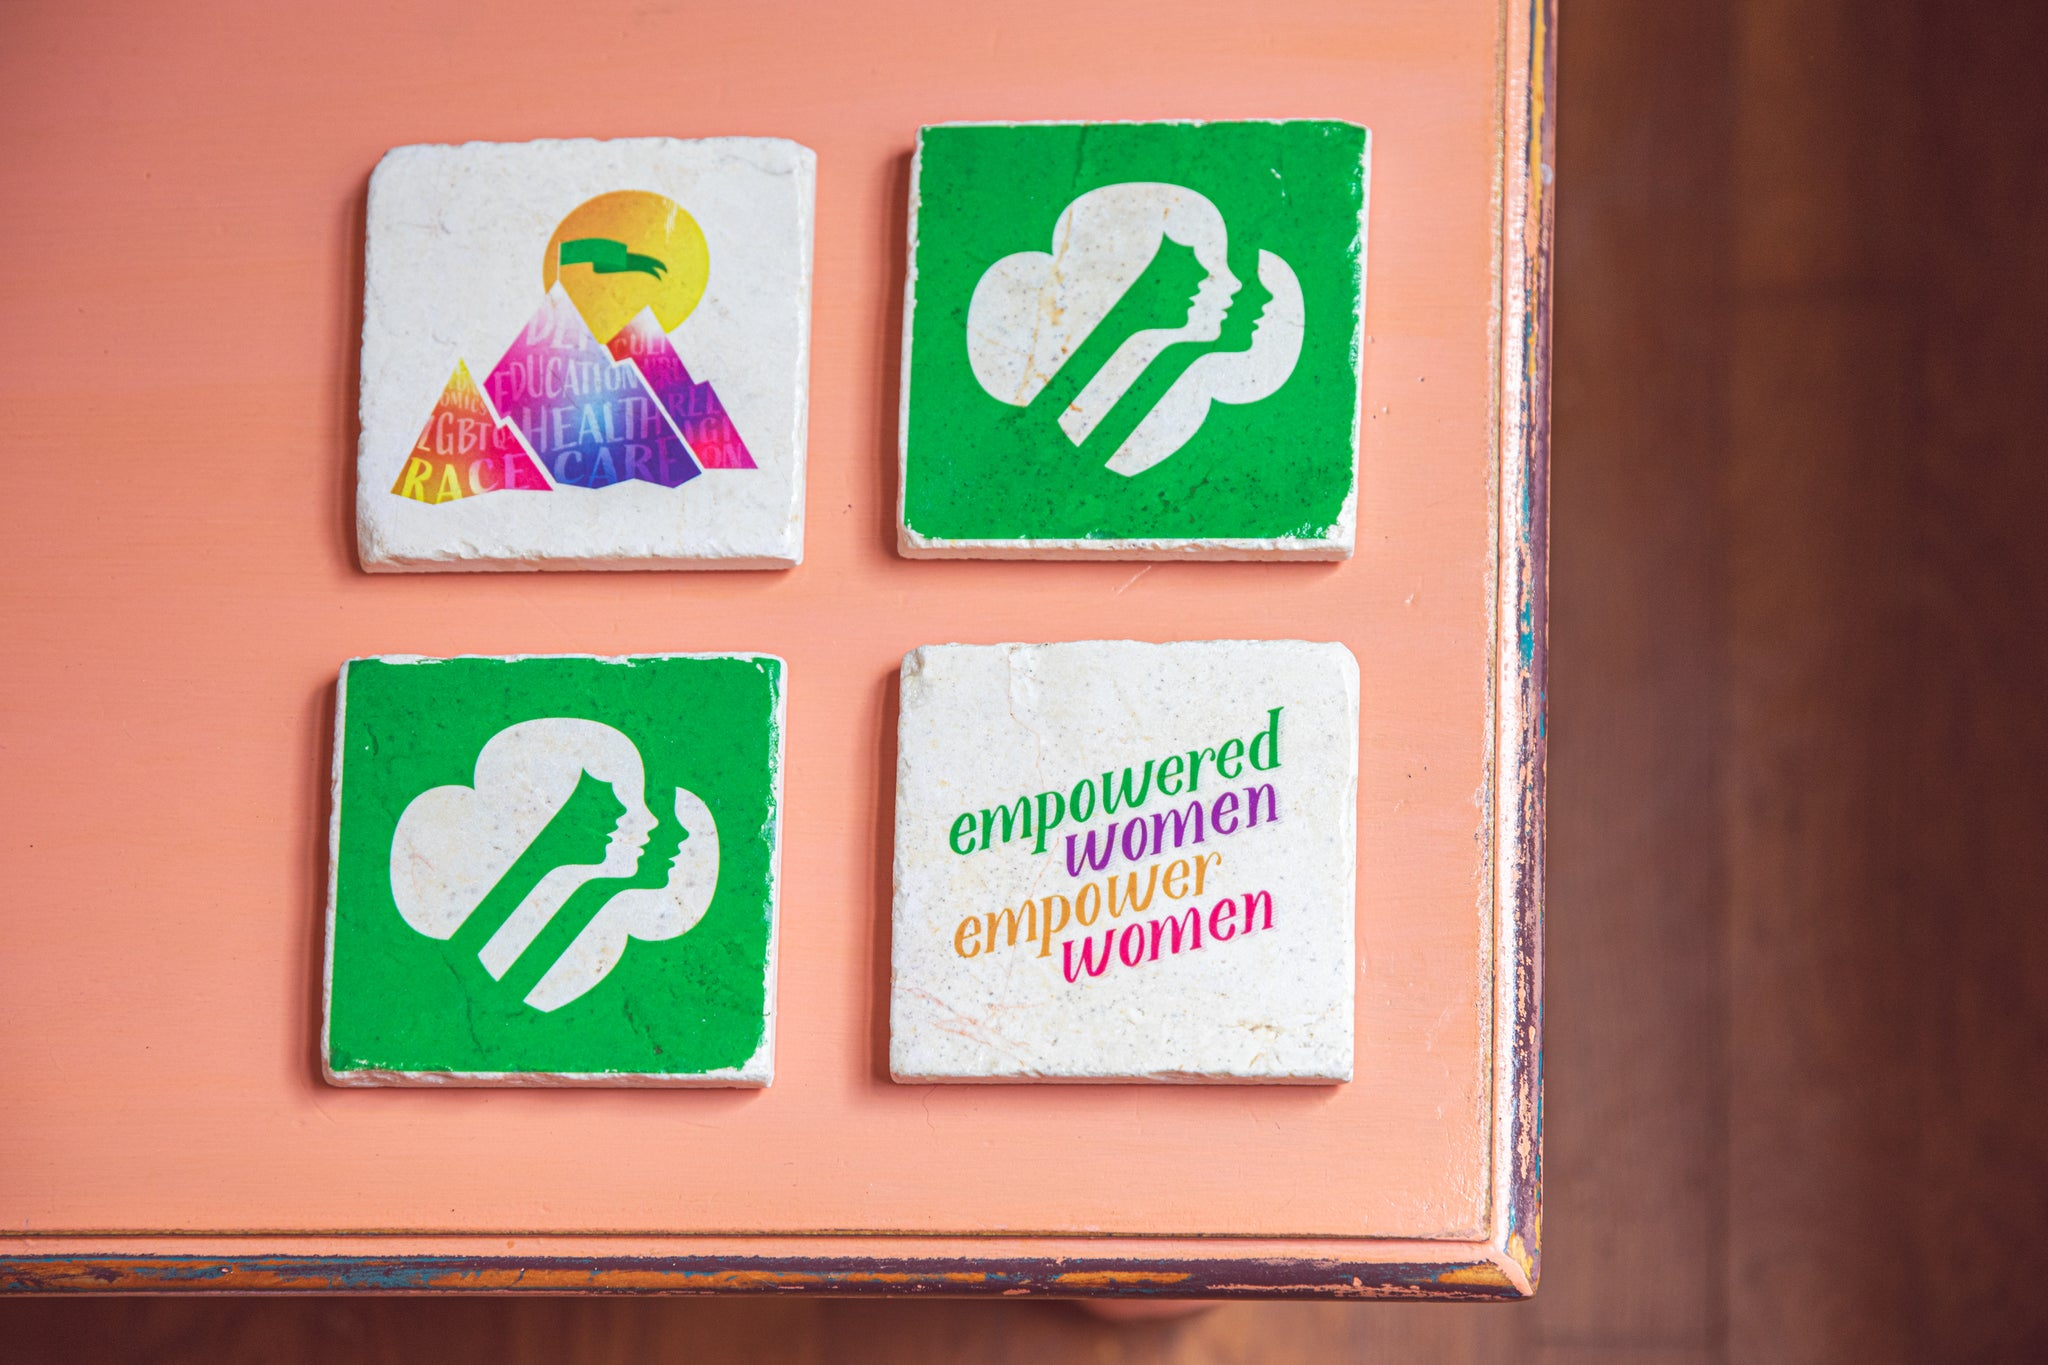 Archd custom gifts marble coaster set of 4 for Girl Scouts of Western washington